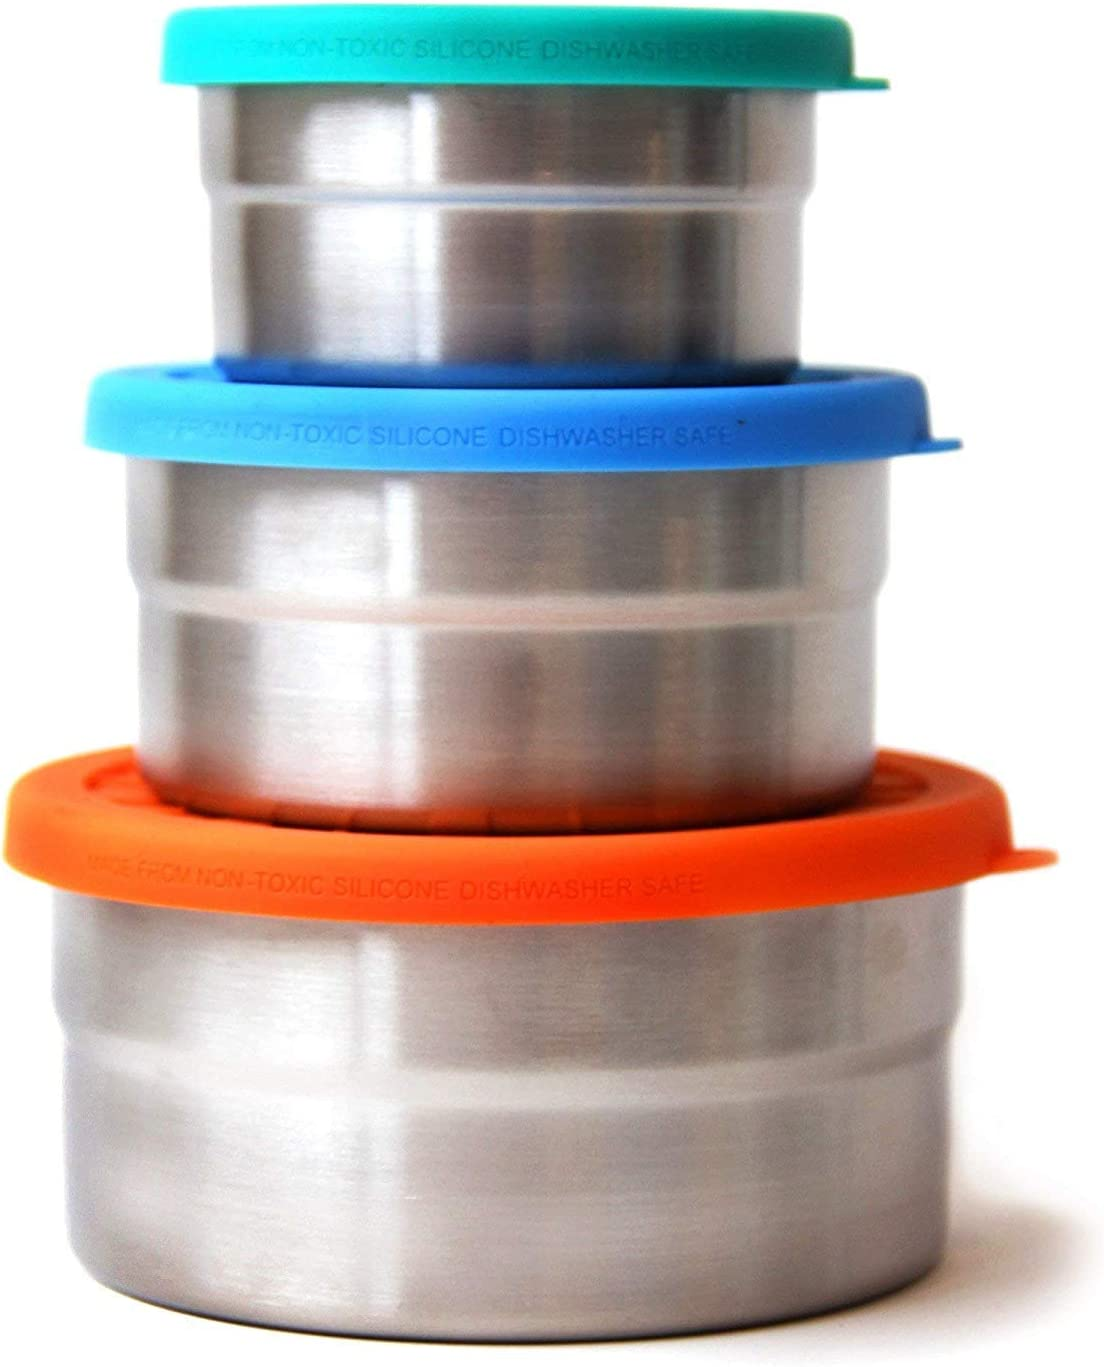 Ecolunchbox Seal Cup Trio 3-Piece Nesting Stainless Steel Leak-Proof Food Storage Containers